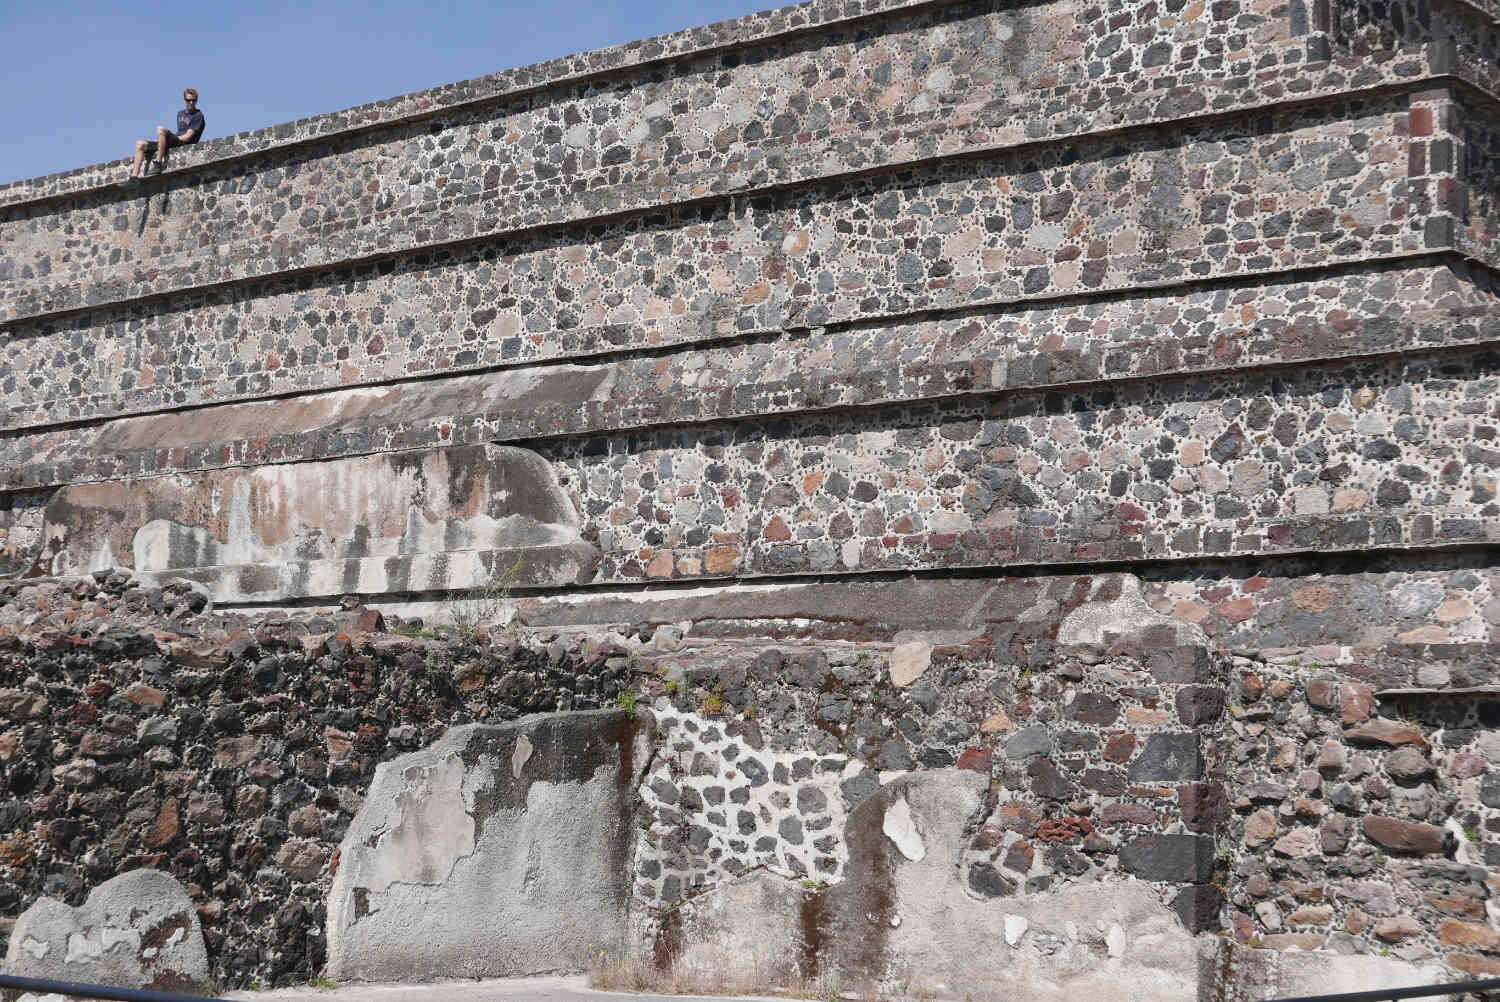 Temple detail in Teotihuacan